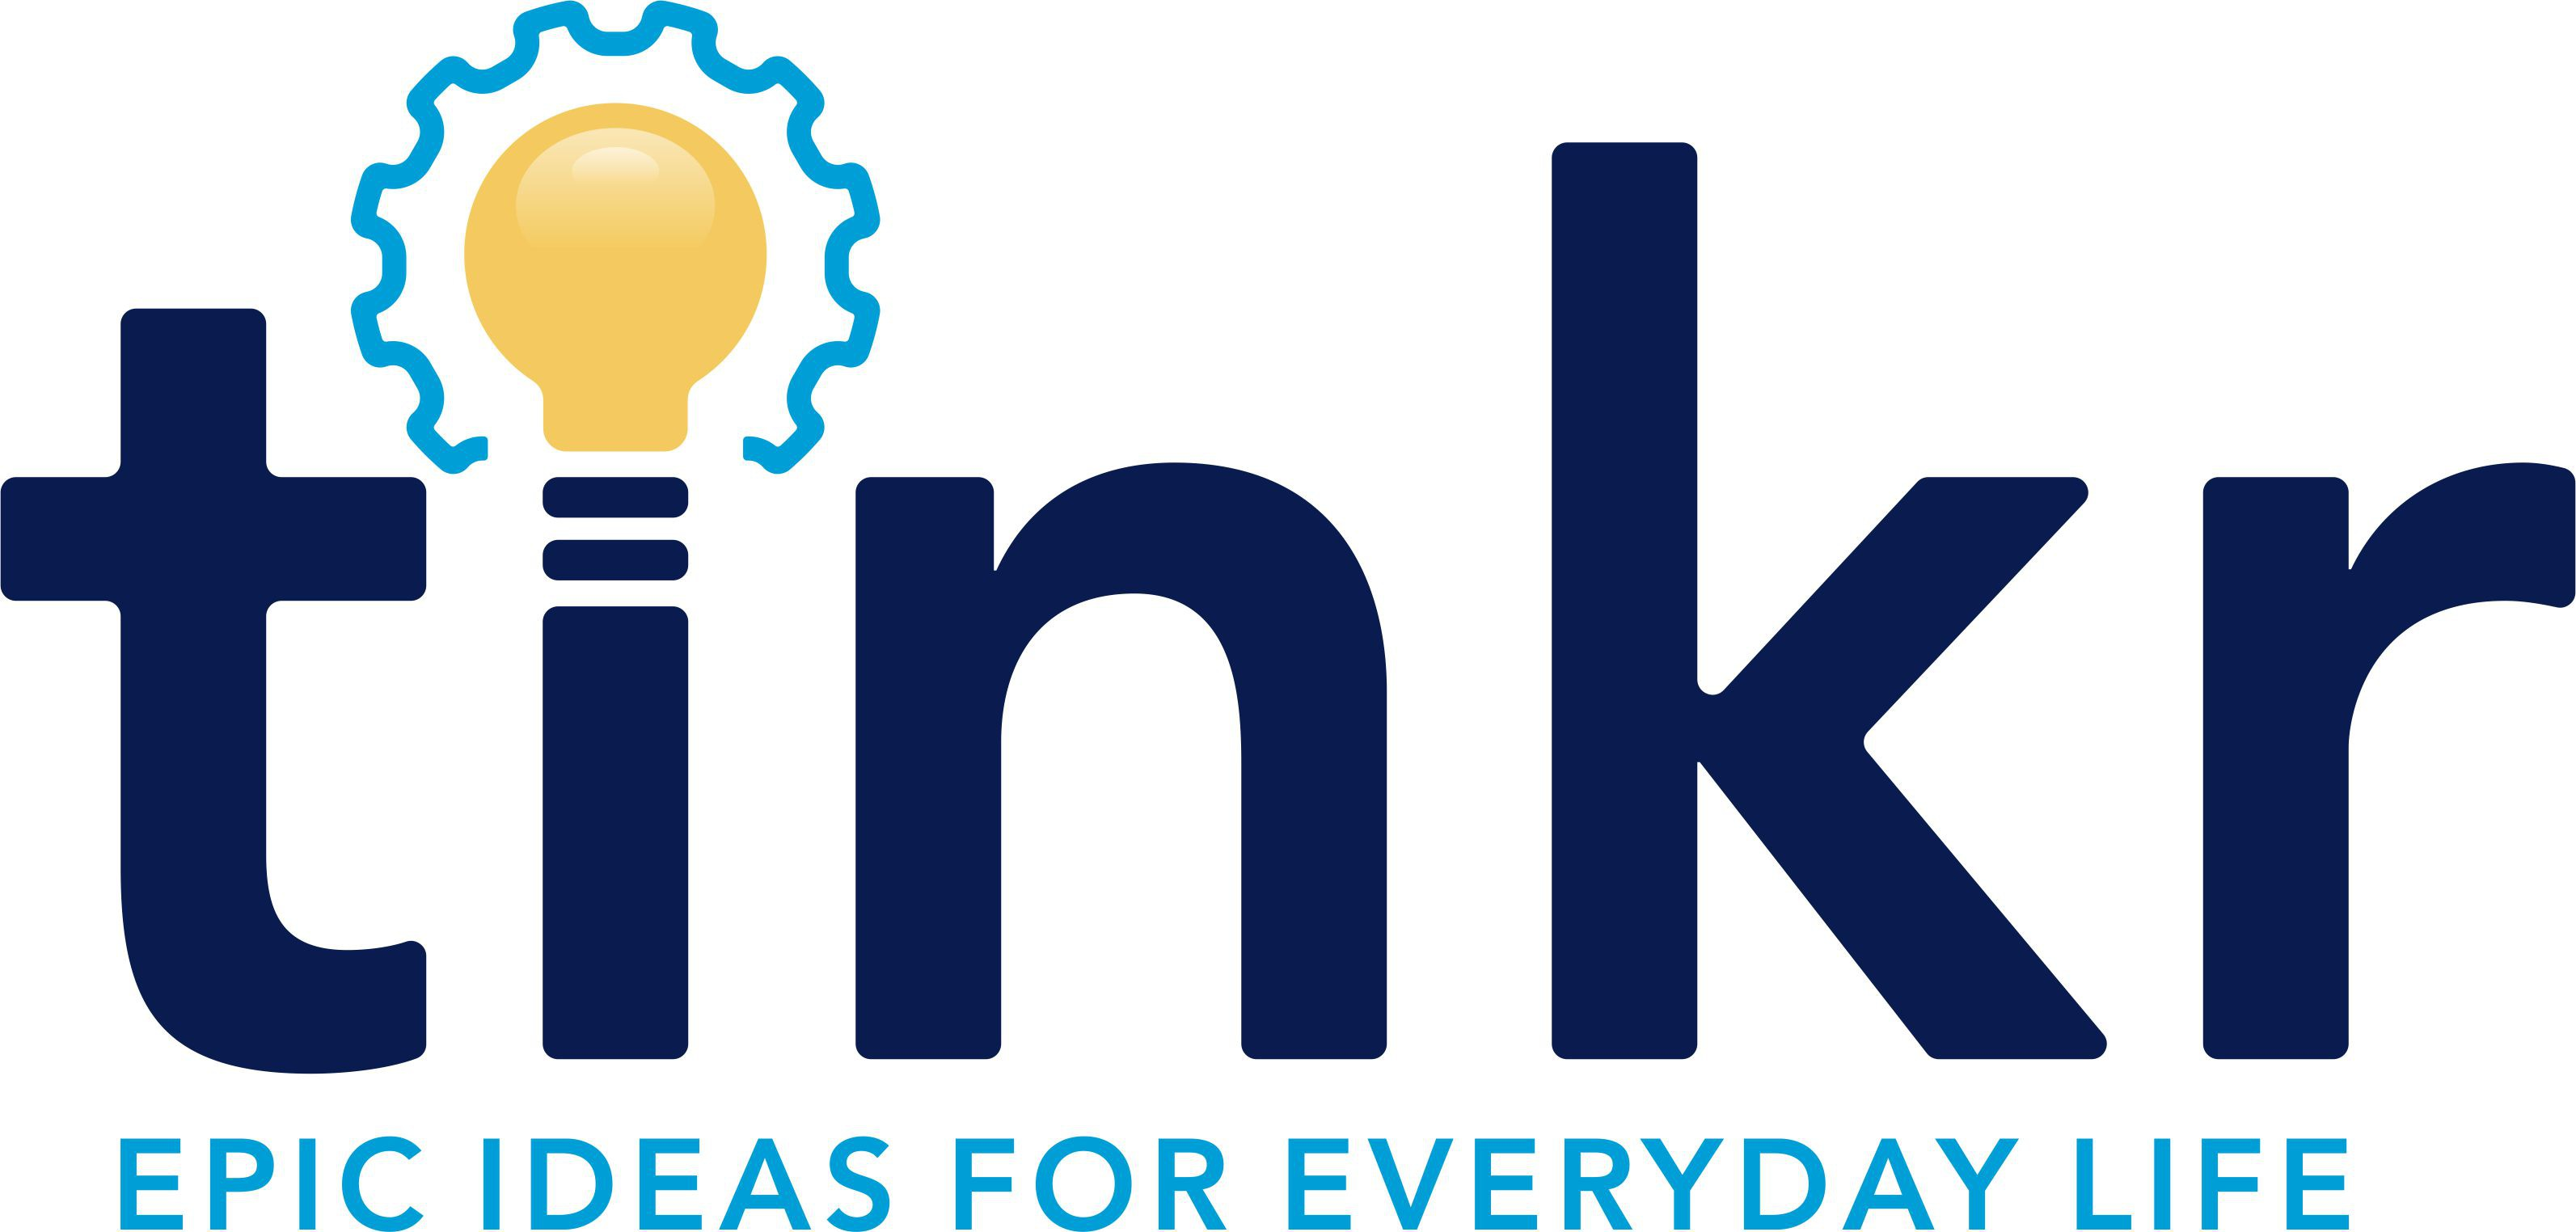 Tap into your inner innovator and design a logo for Tinkr